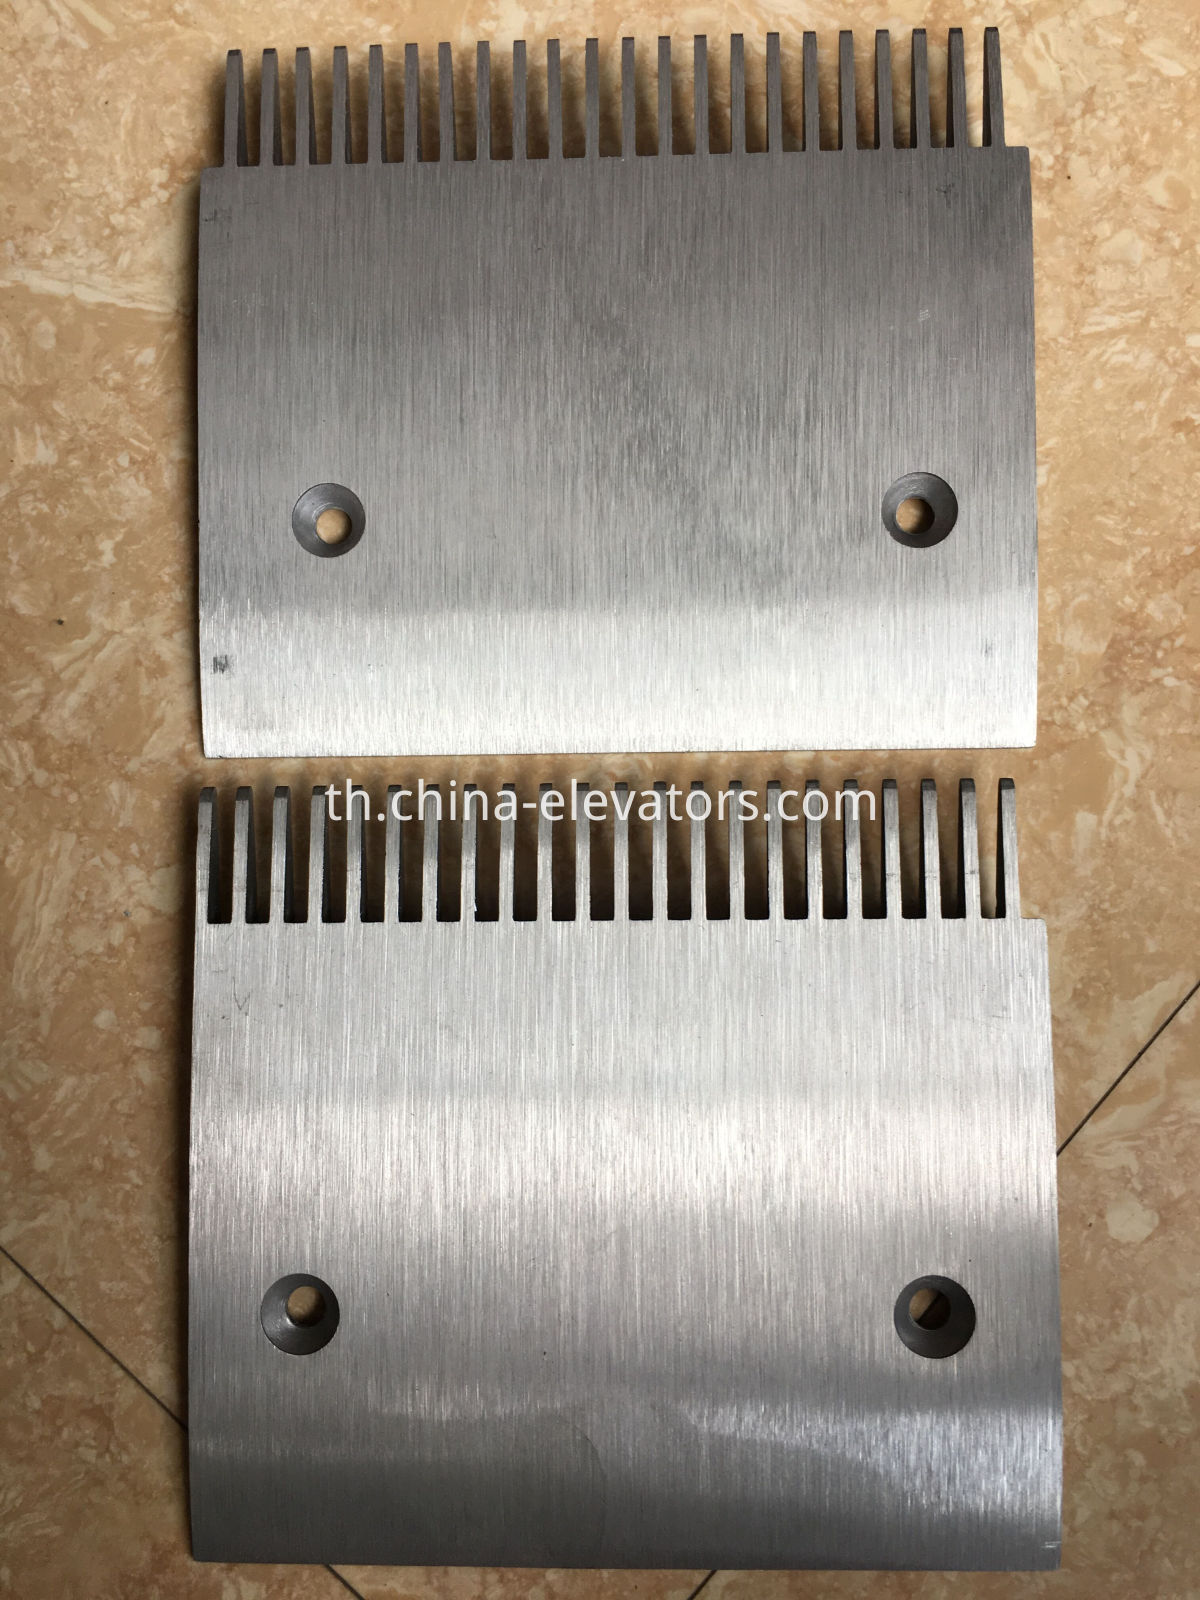 Aluminium Alloy Combs for Schindler Passenger Conveyors